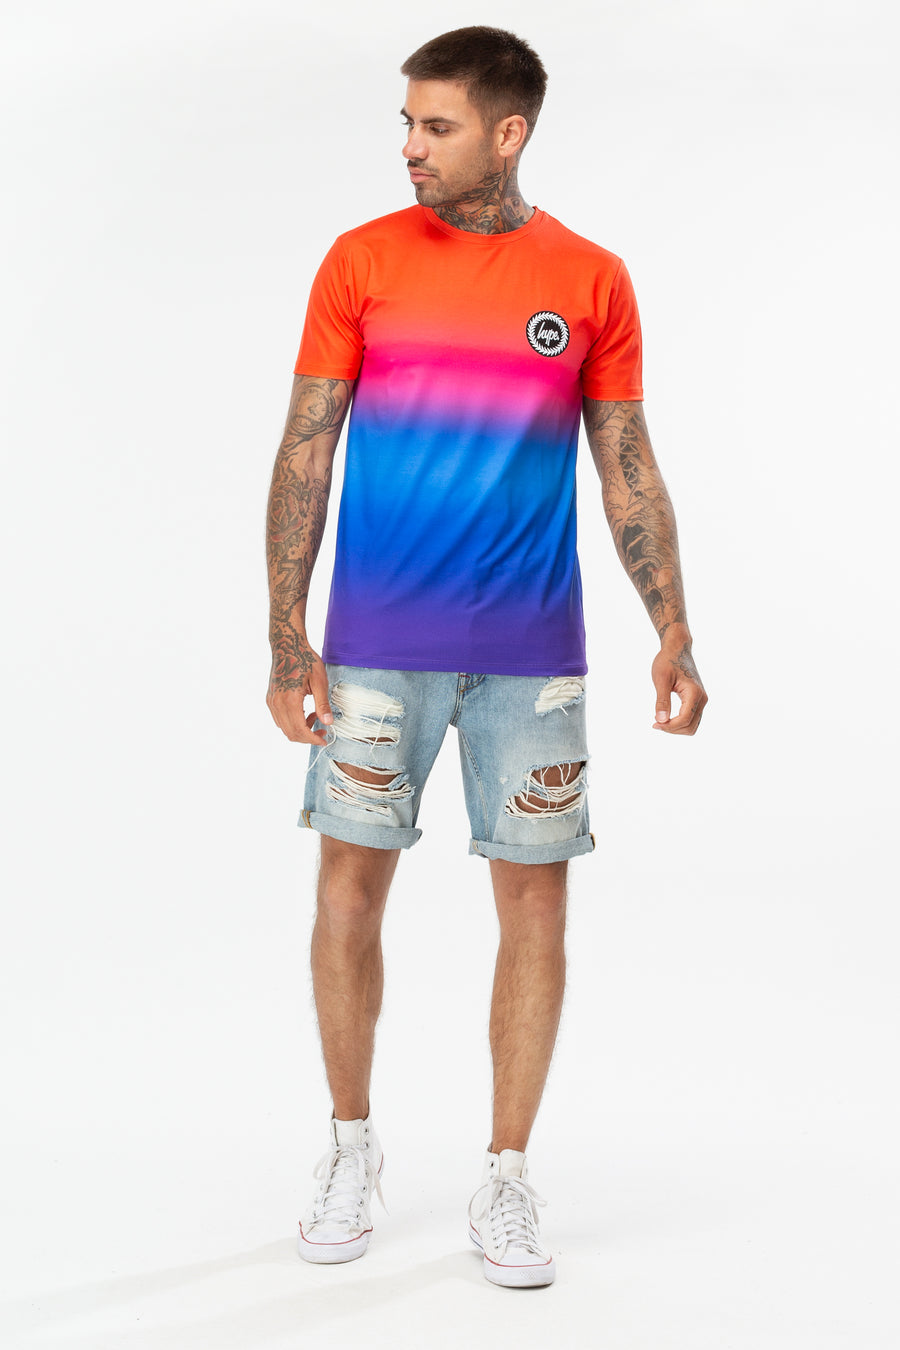 HYPE Men's T-shirt Rainbow Fade